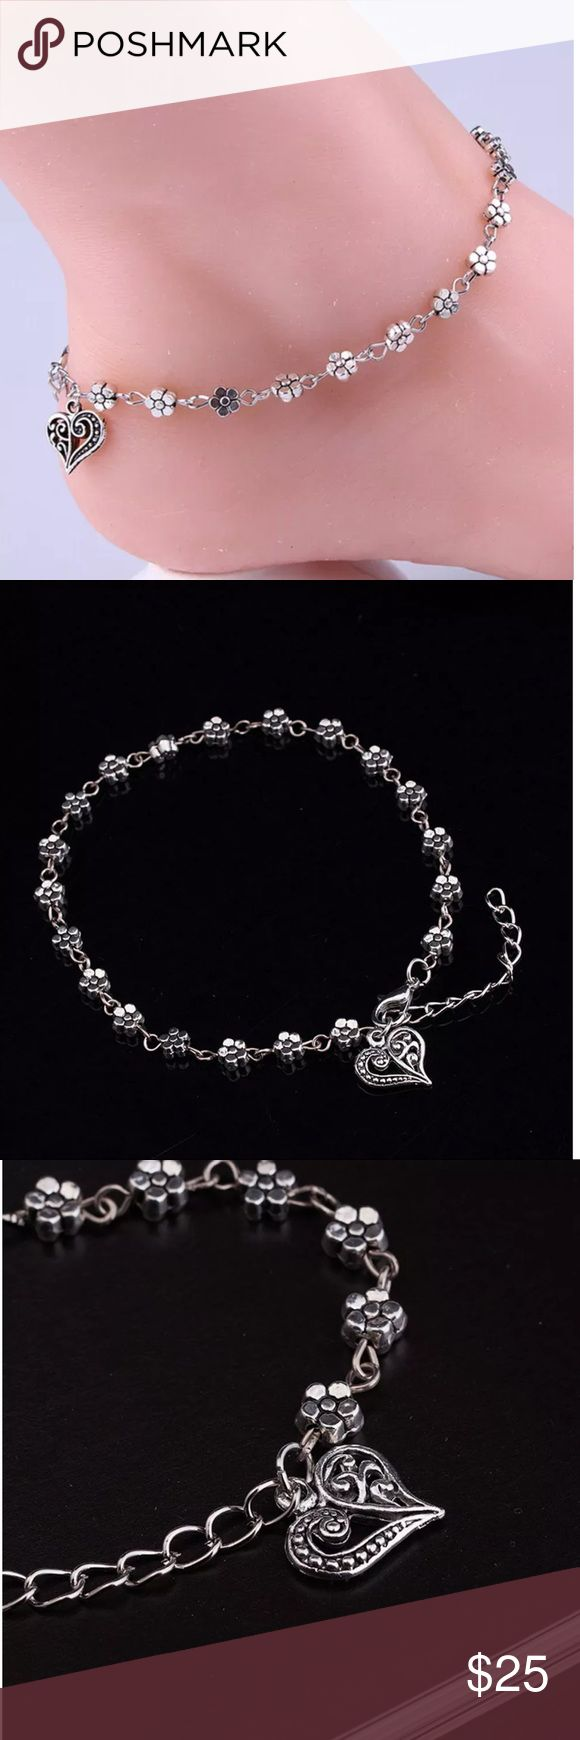 bracelet anklet items fashion from heart ankle color s new w designer women chain brand in leg item bracelets anklets gold wholesale plated jewelry foot